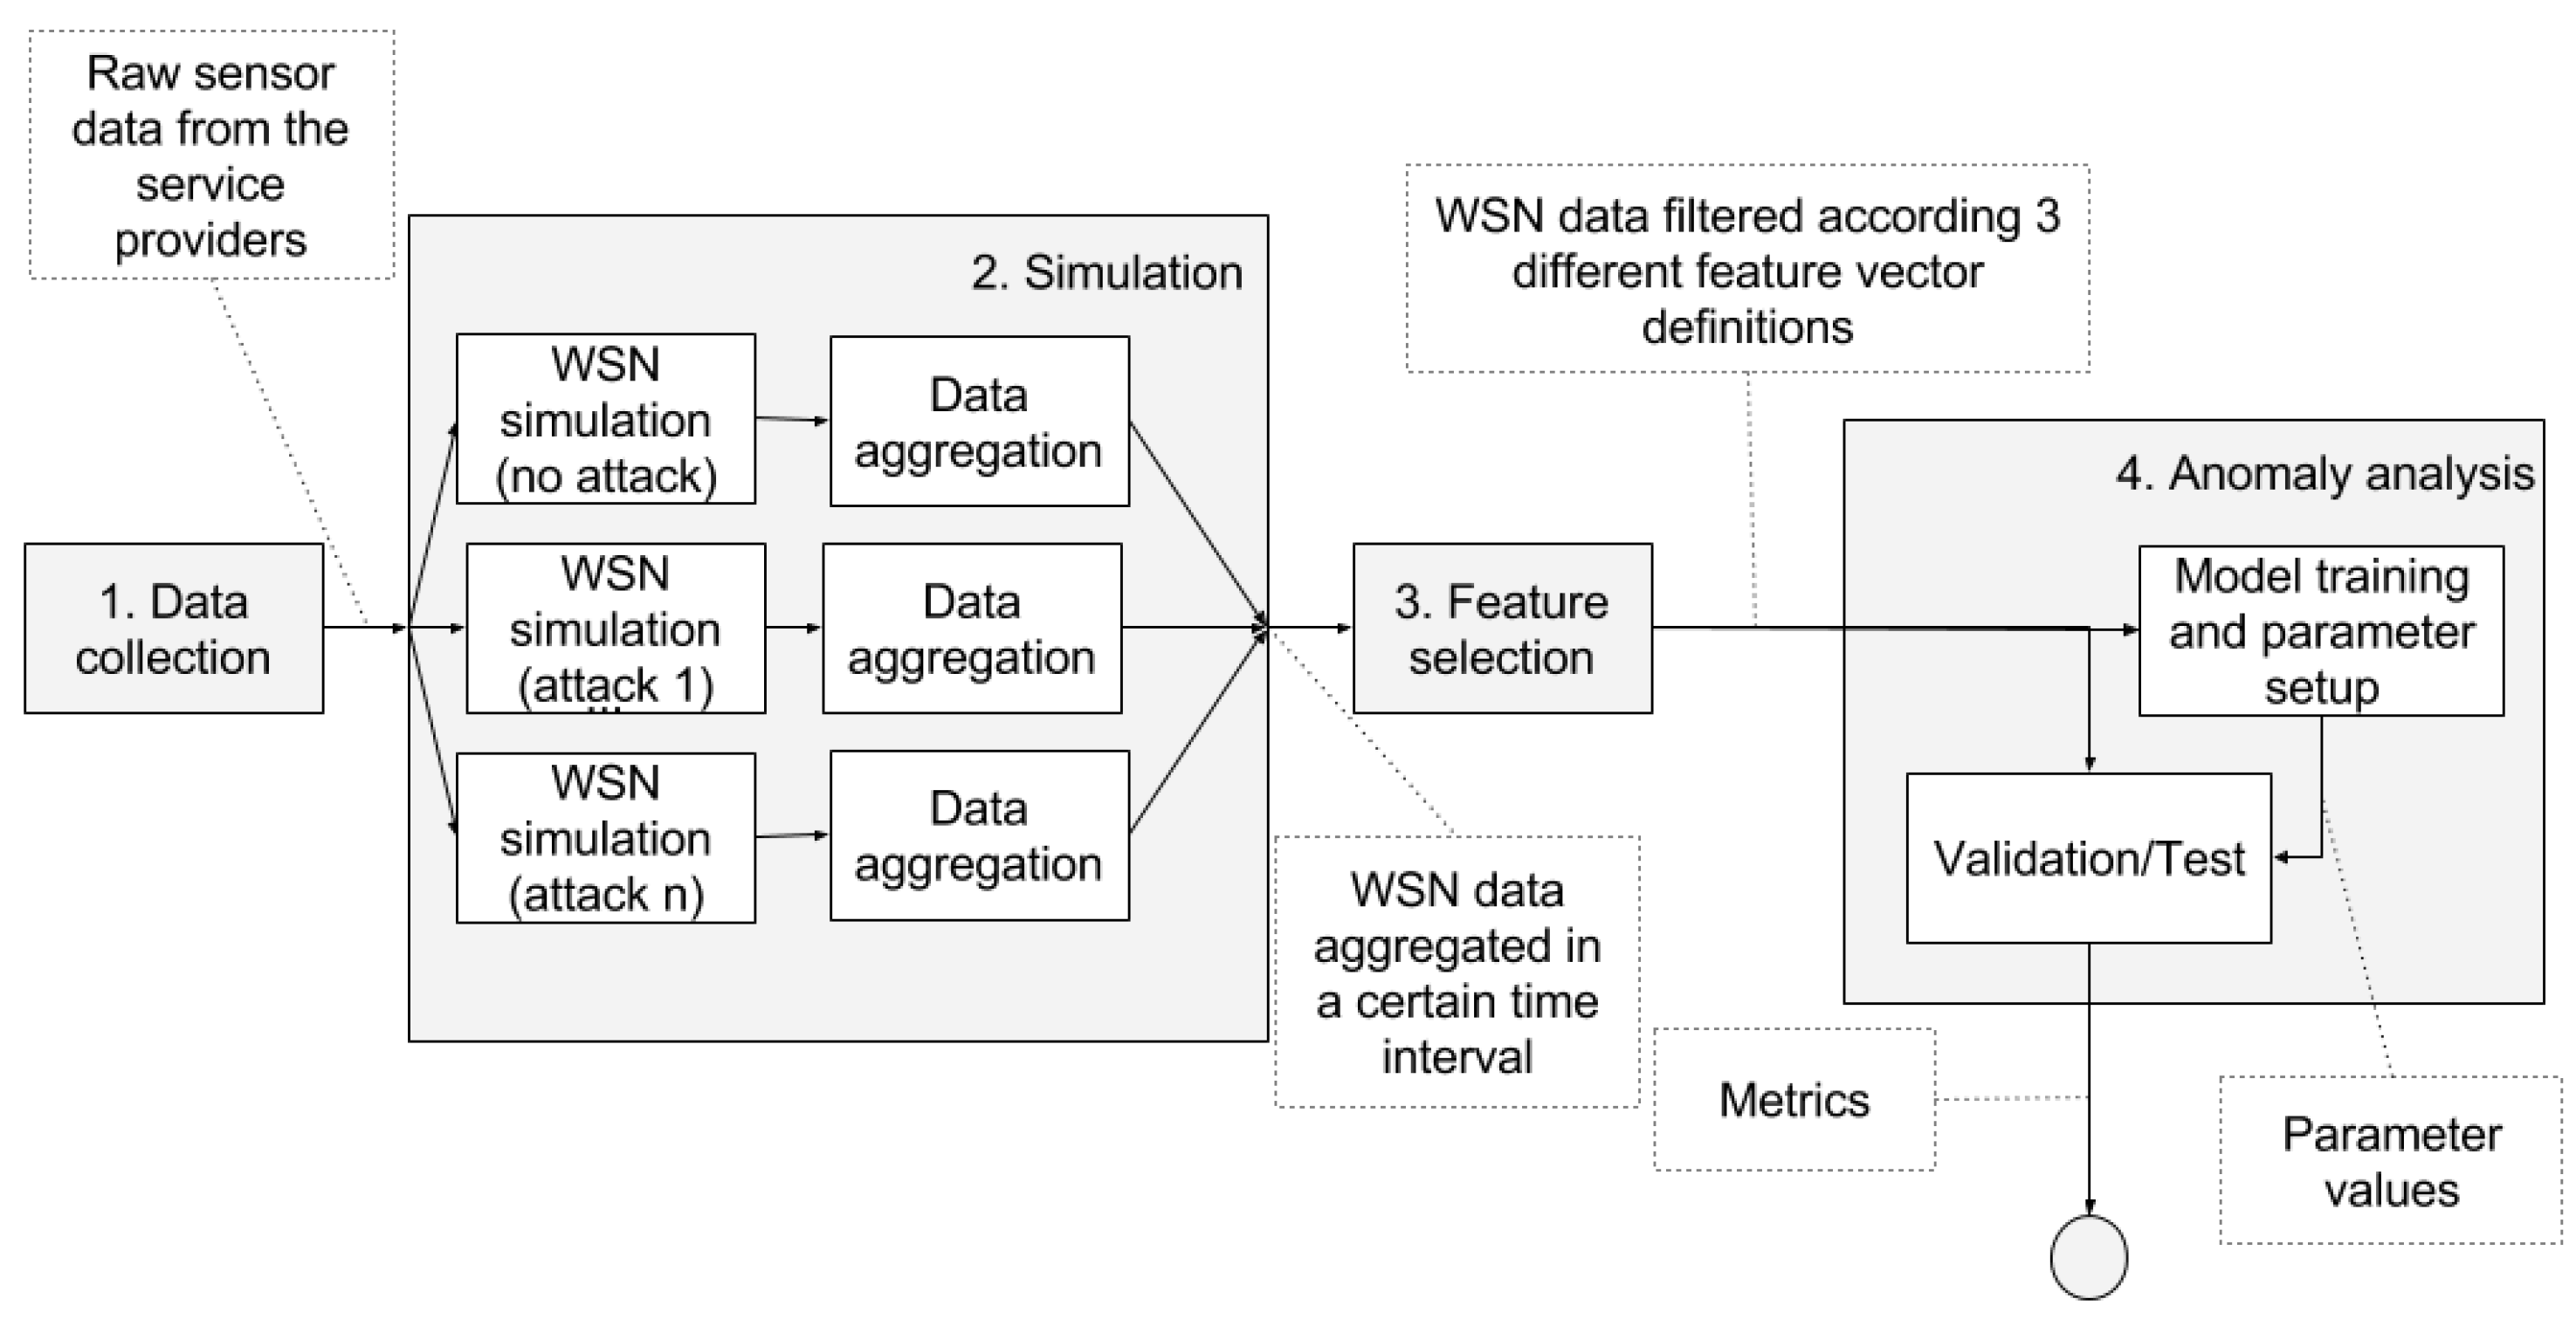 modeling attacks on wireless sensor networks Sunghyuck hong, sunho lim and jaeki song, unified modeling language based analysis of security attacks in wireless sensor networks: a survey, ksii transactions on internet and information systems, vol 5, no 4, pp 805-821, 2011.